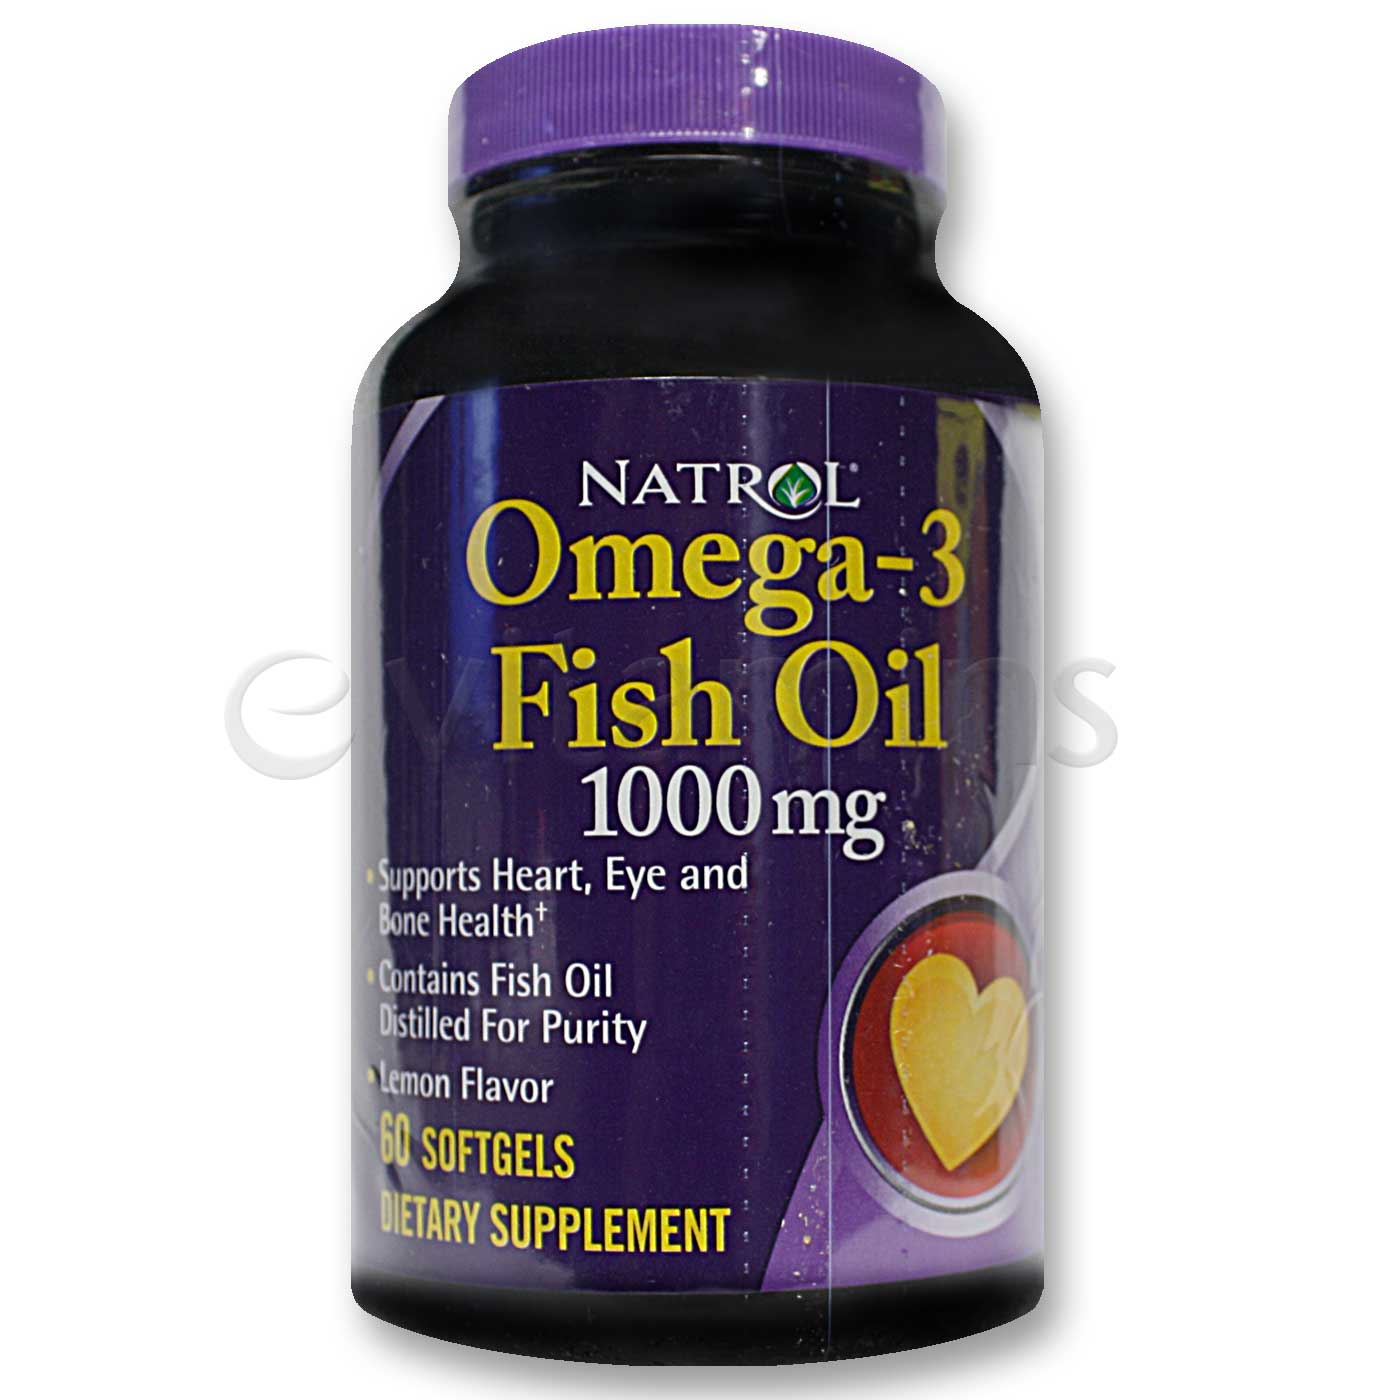 Natrol omega 3 fish oil 1 000 mg lemon 60 softgels for What is omega 3 fish oil good for